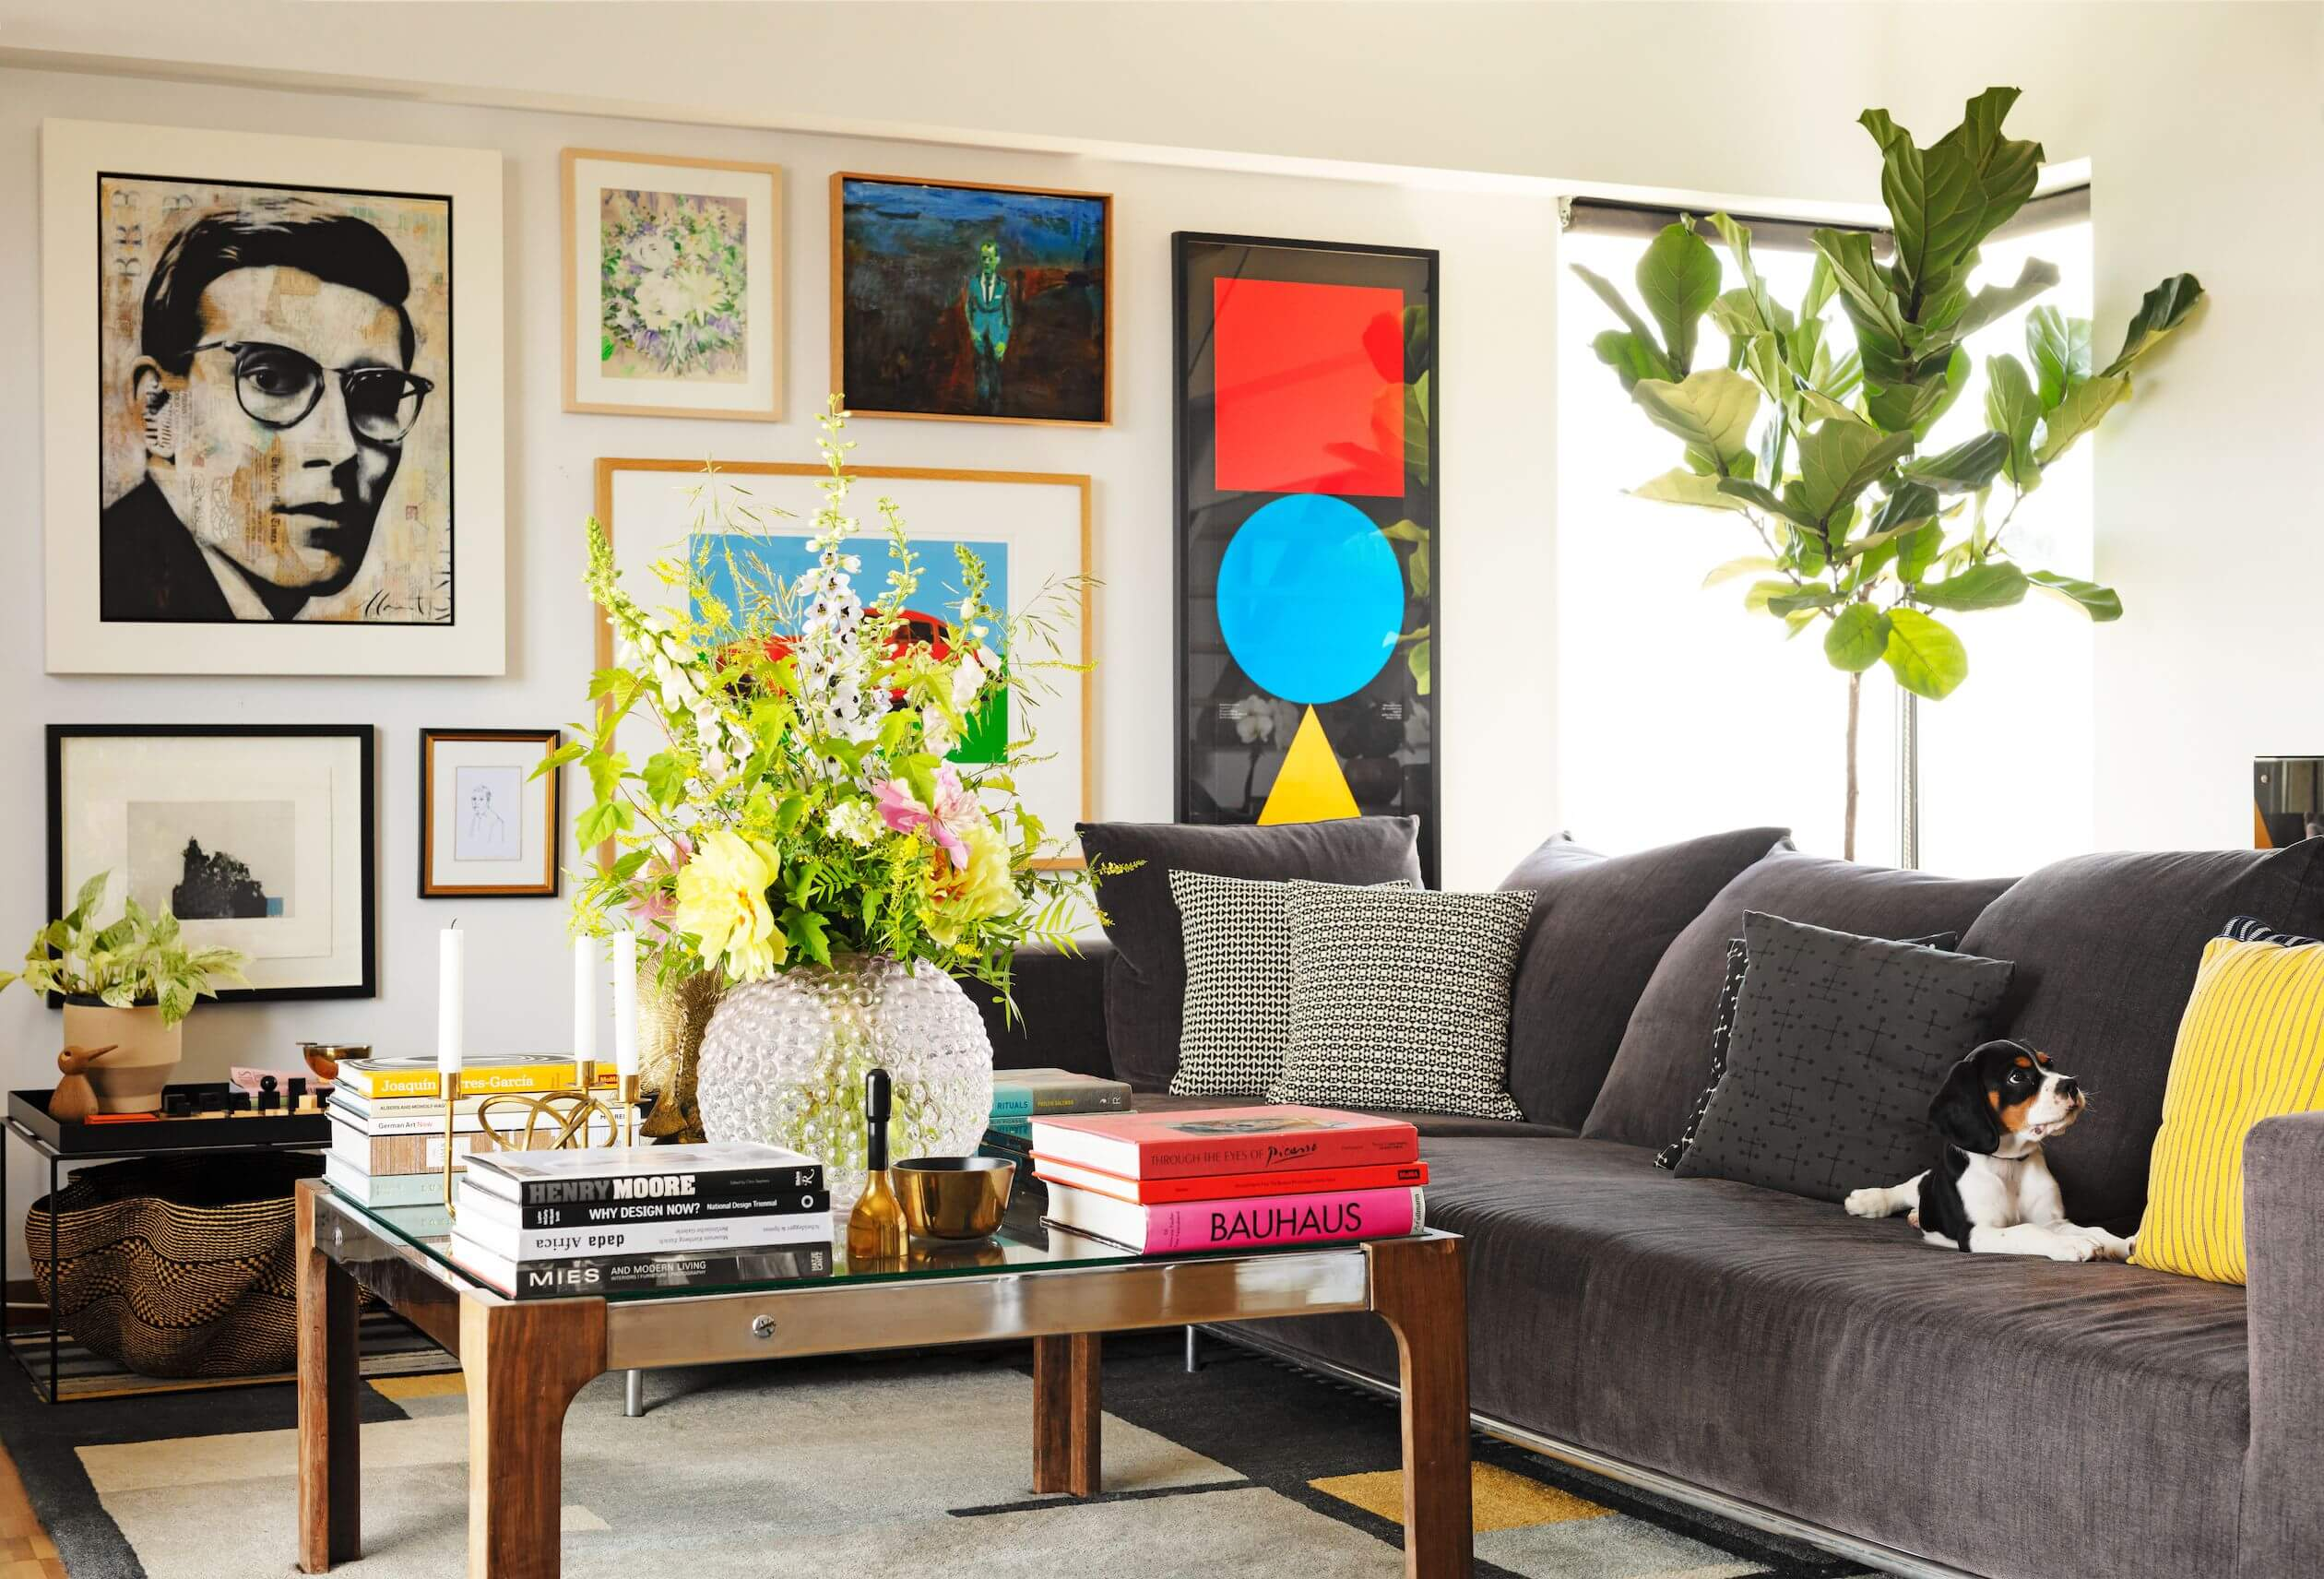 Image of a comfy home with décor all around